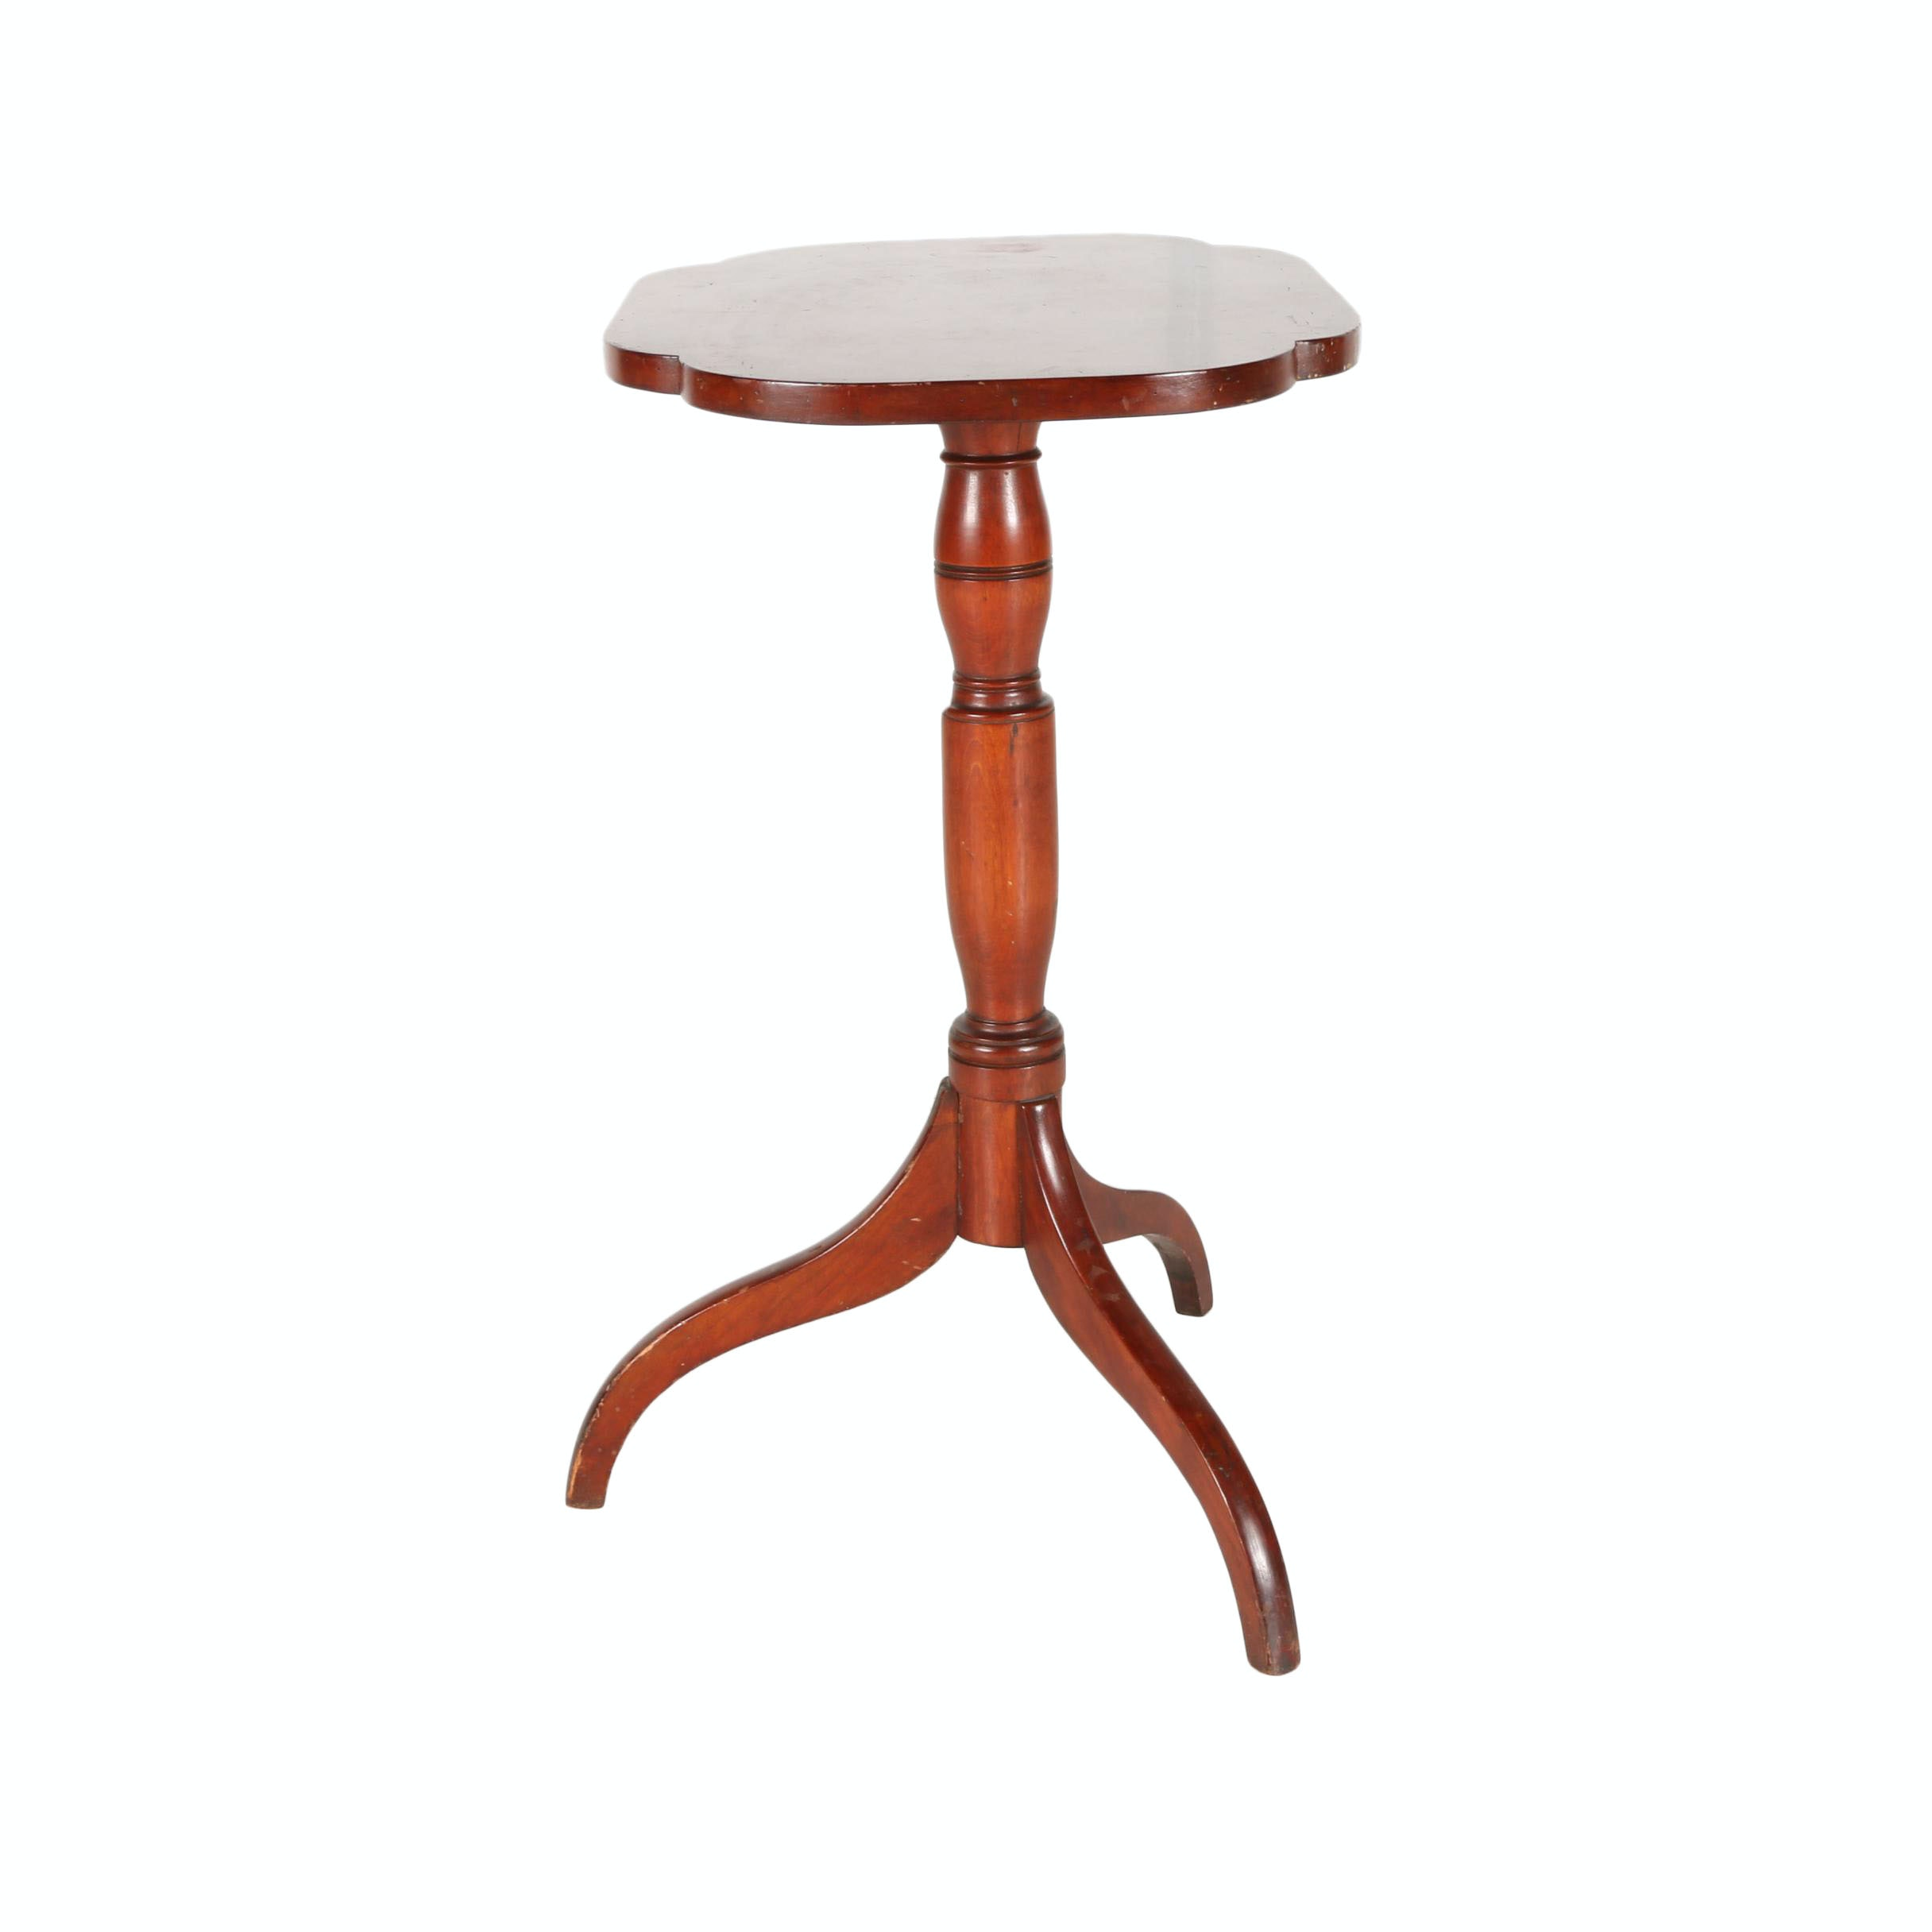 Early 19th Century Federal Cherry Candlestand